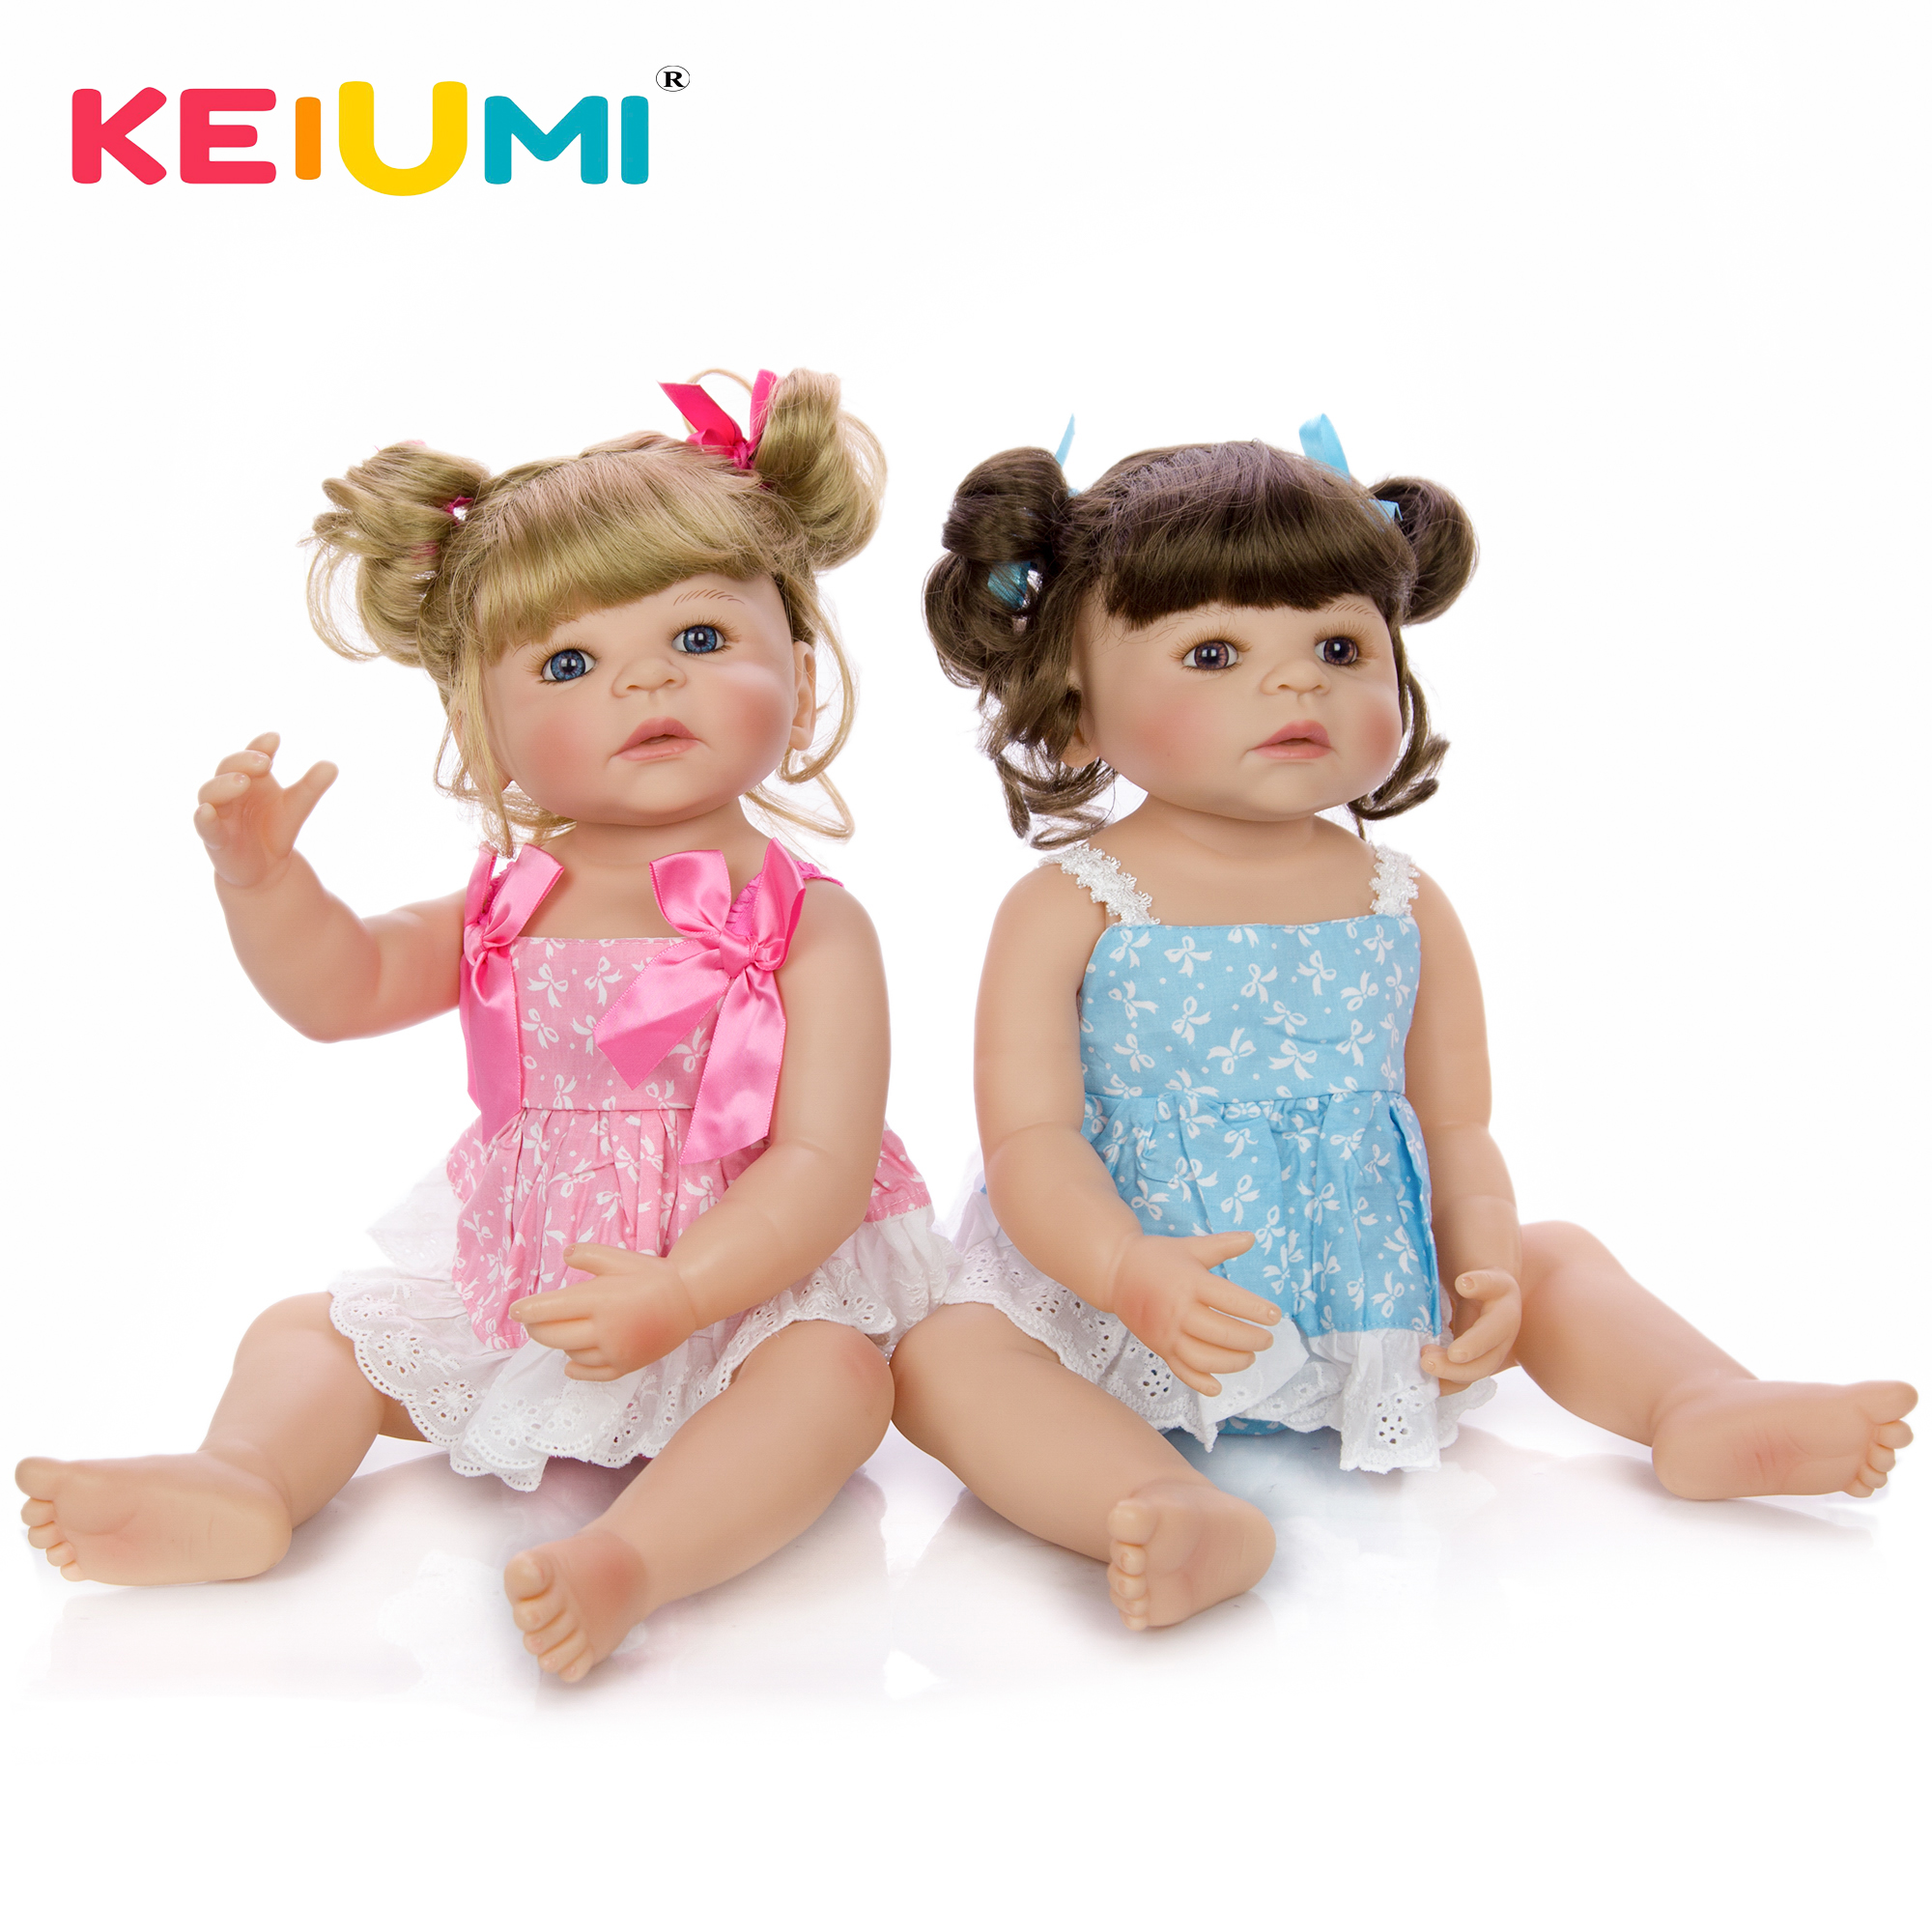 New Arrival 22 Reborn Dolls Full Silicone Body Newborn Girl Twins Doll Baby Toy With Gold